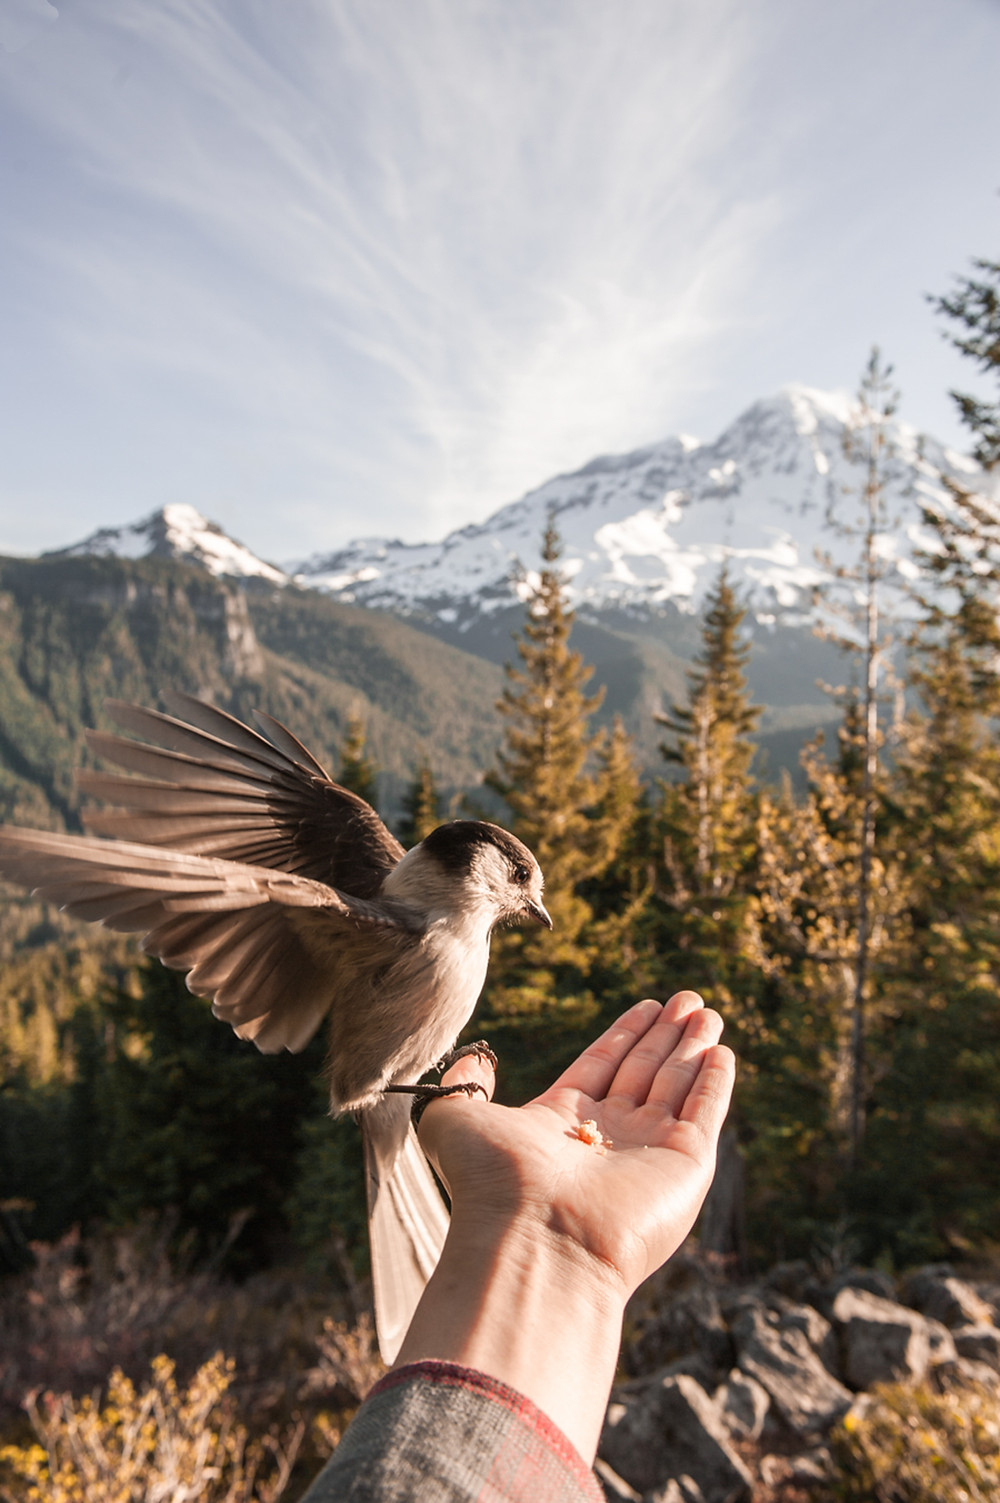 a bird sitting on a person's hand